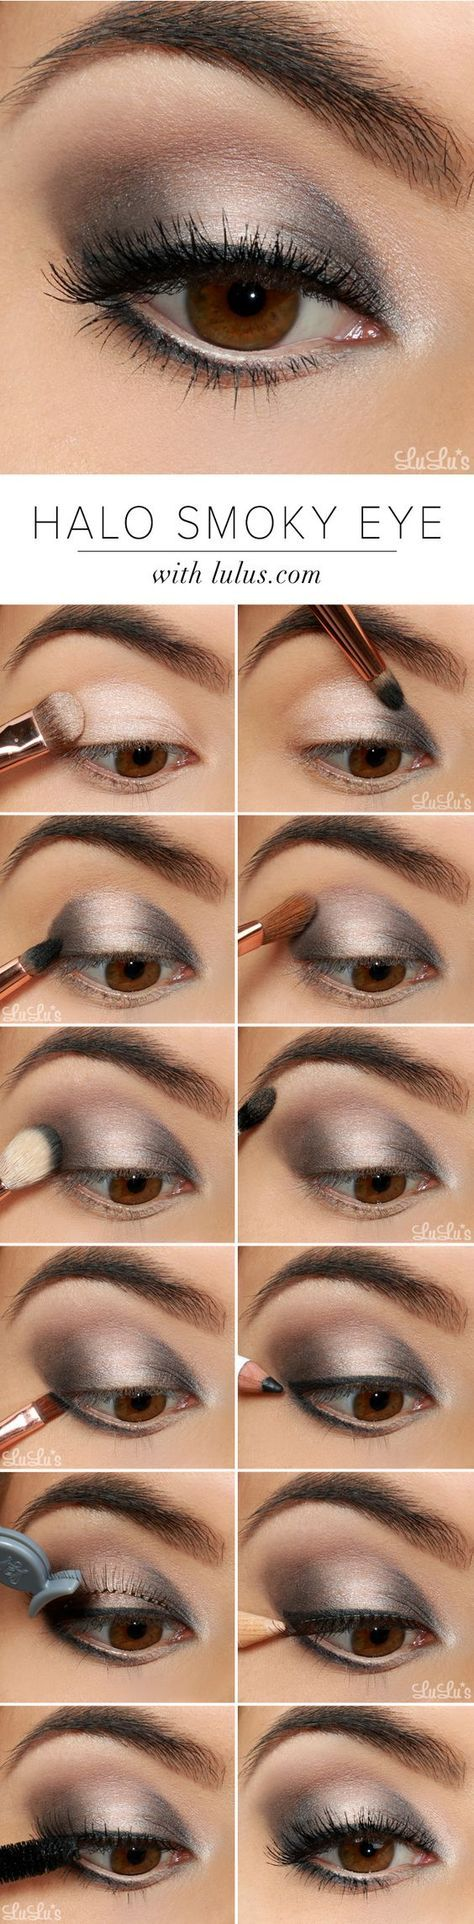 20 Easy Step By Step Eyeshadow Tutorials for Beginners - Her Style Code #eyemakeup